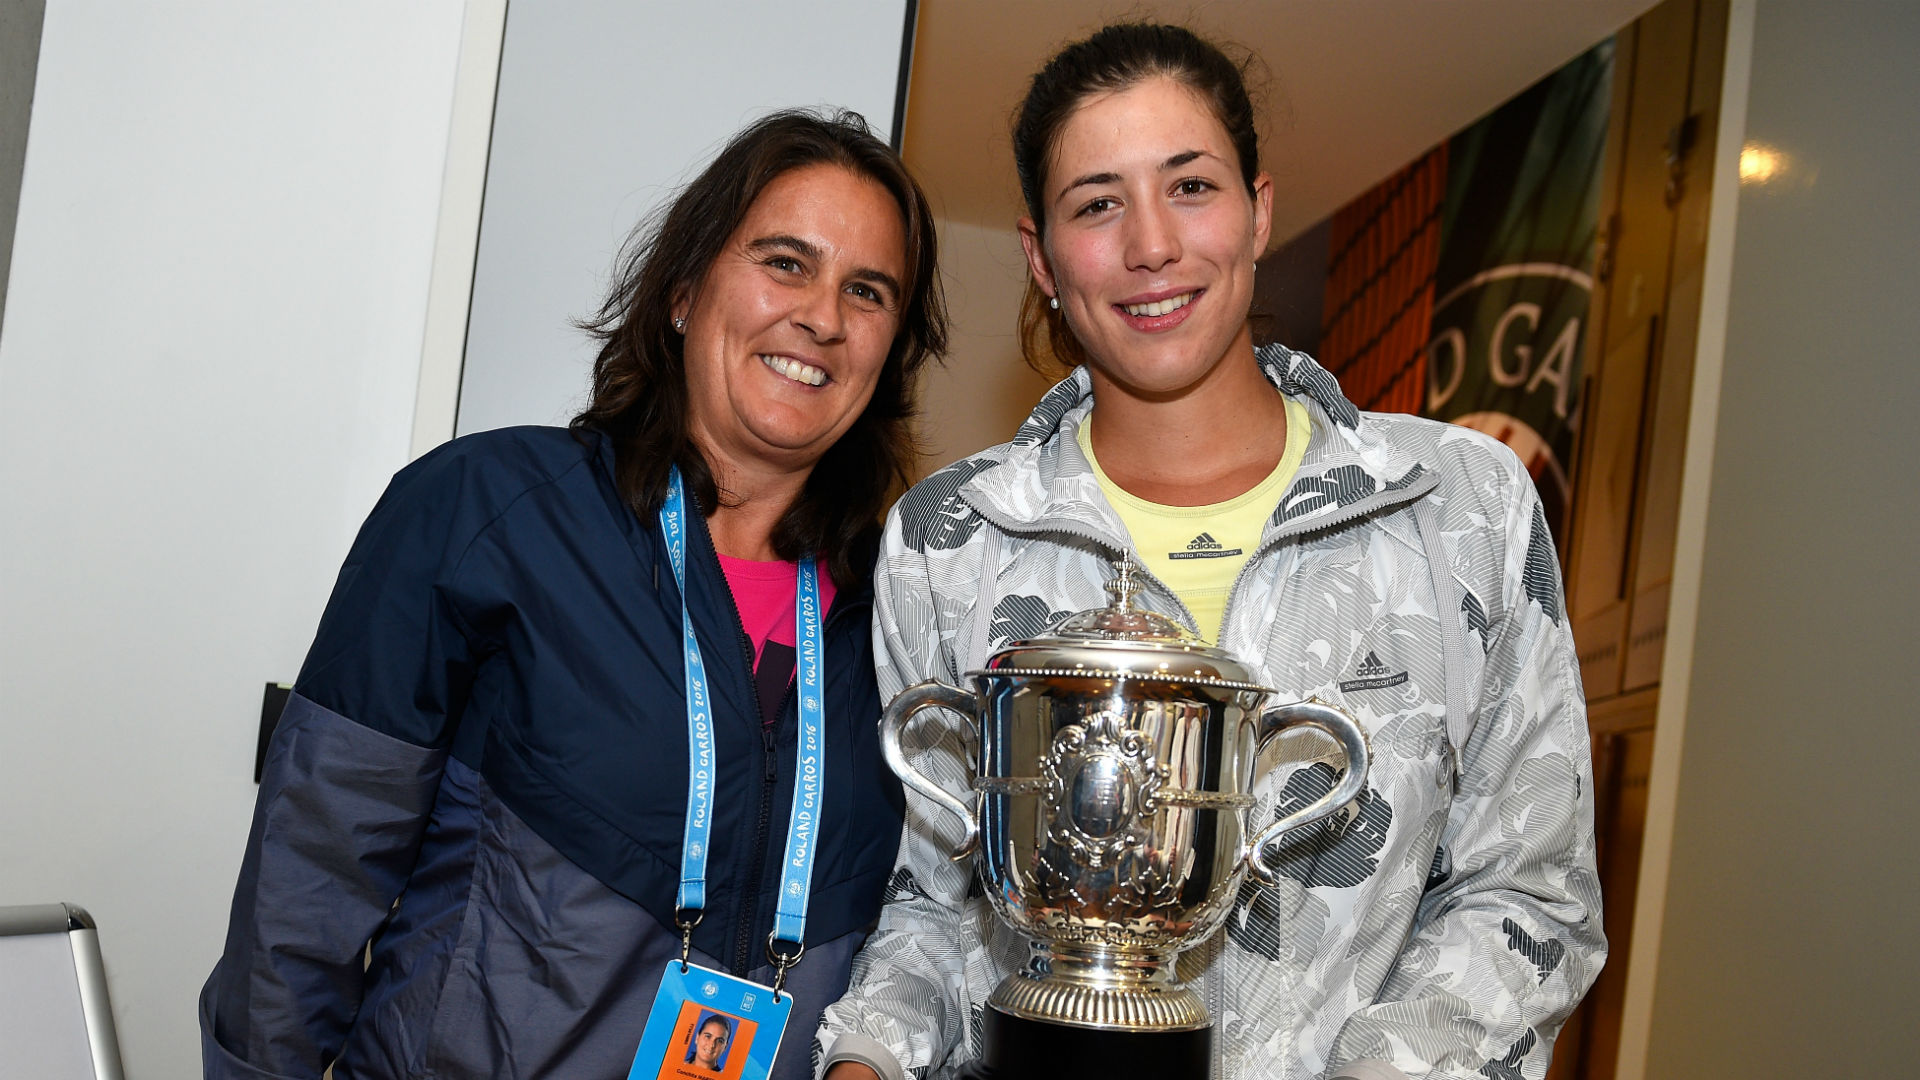 Muguruza reunites with coach Martinez